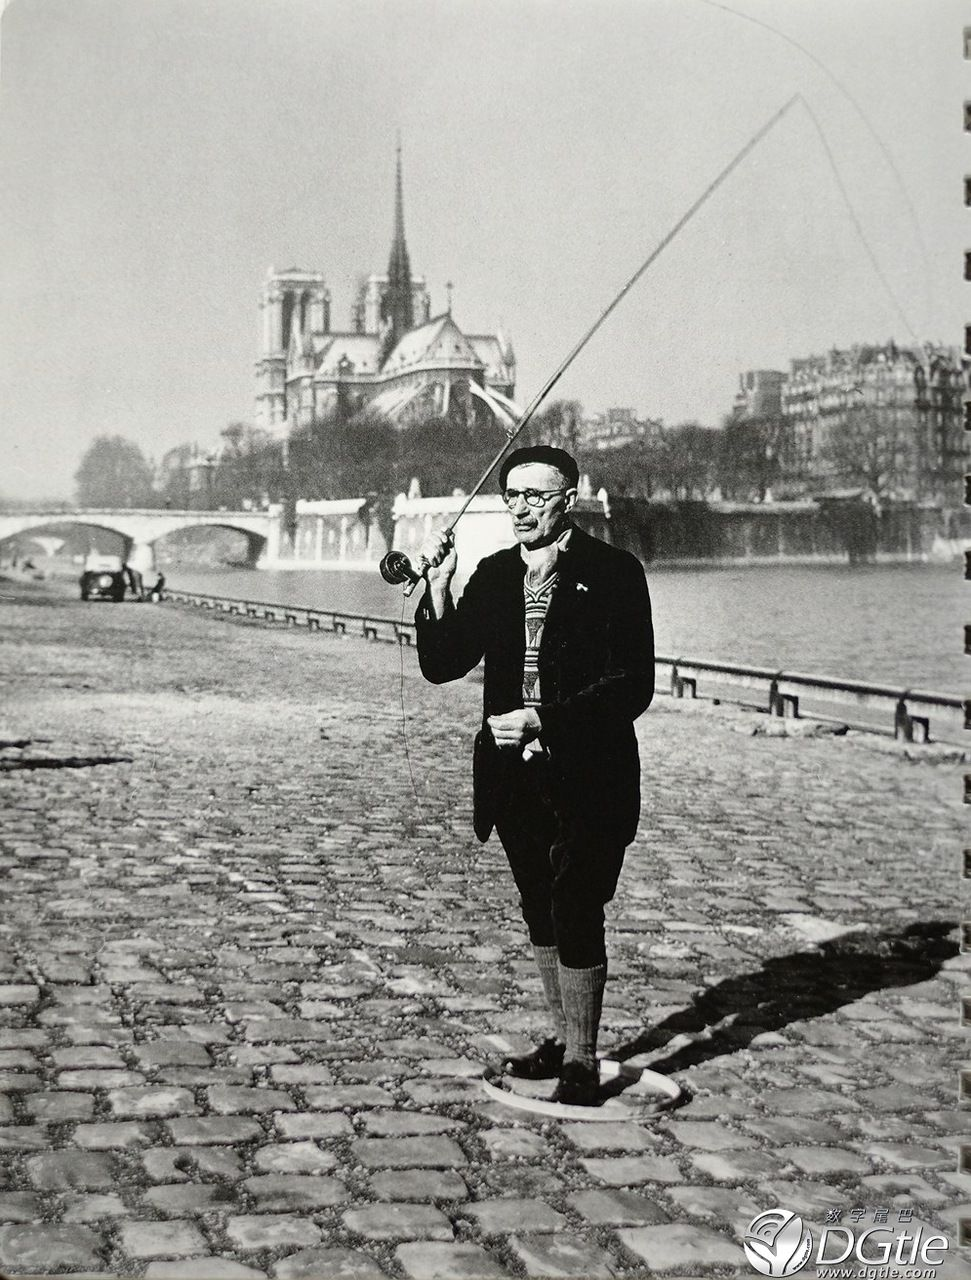 Robert Doisneau. 1951. A Fisherman. Paris.